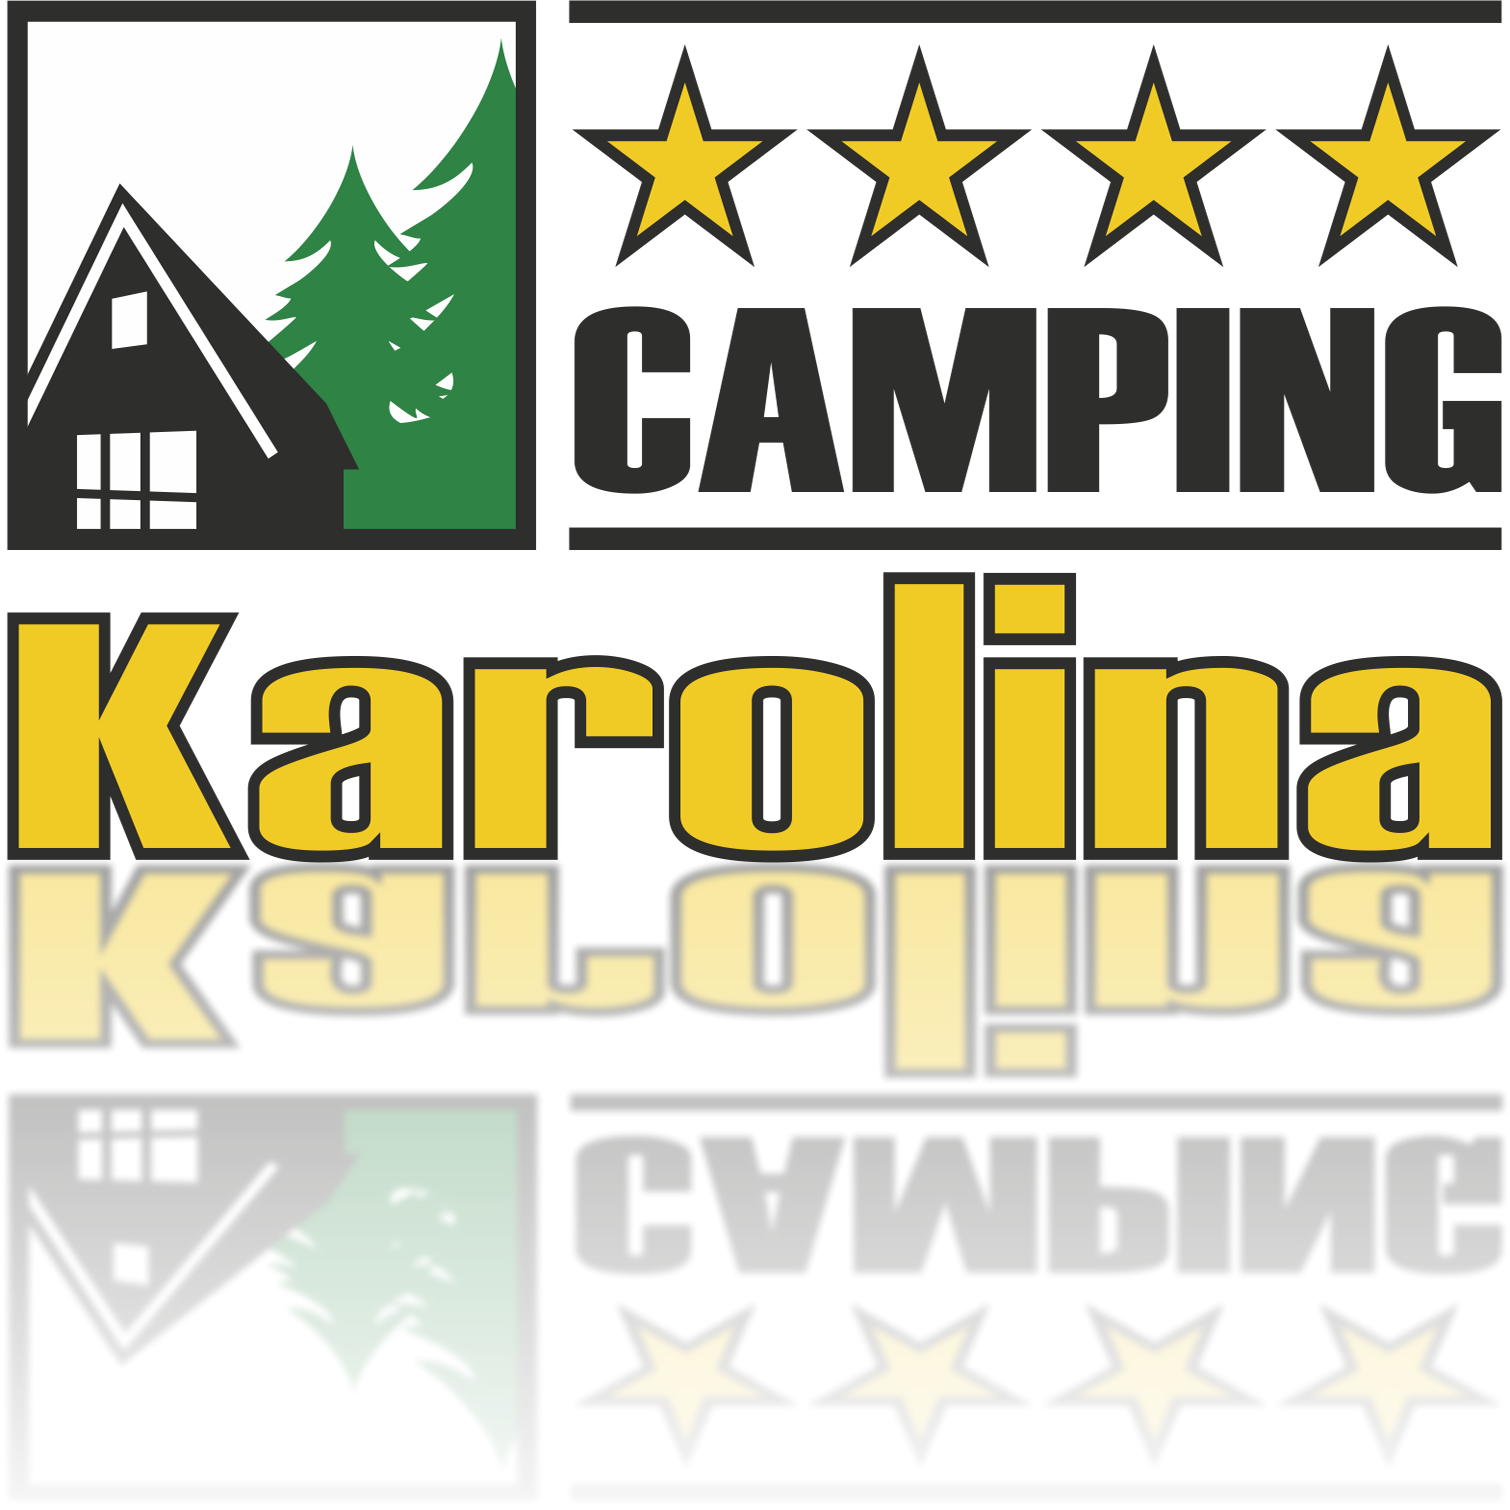 https://www.kempy-chaty.cz/sites/default/files/turistika/campingkarolina_logoa_stin.png